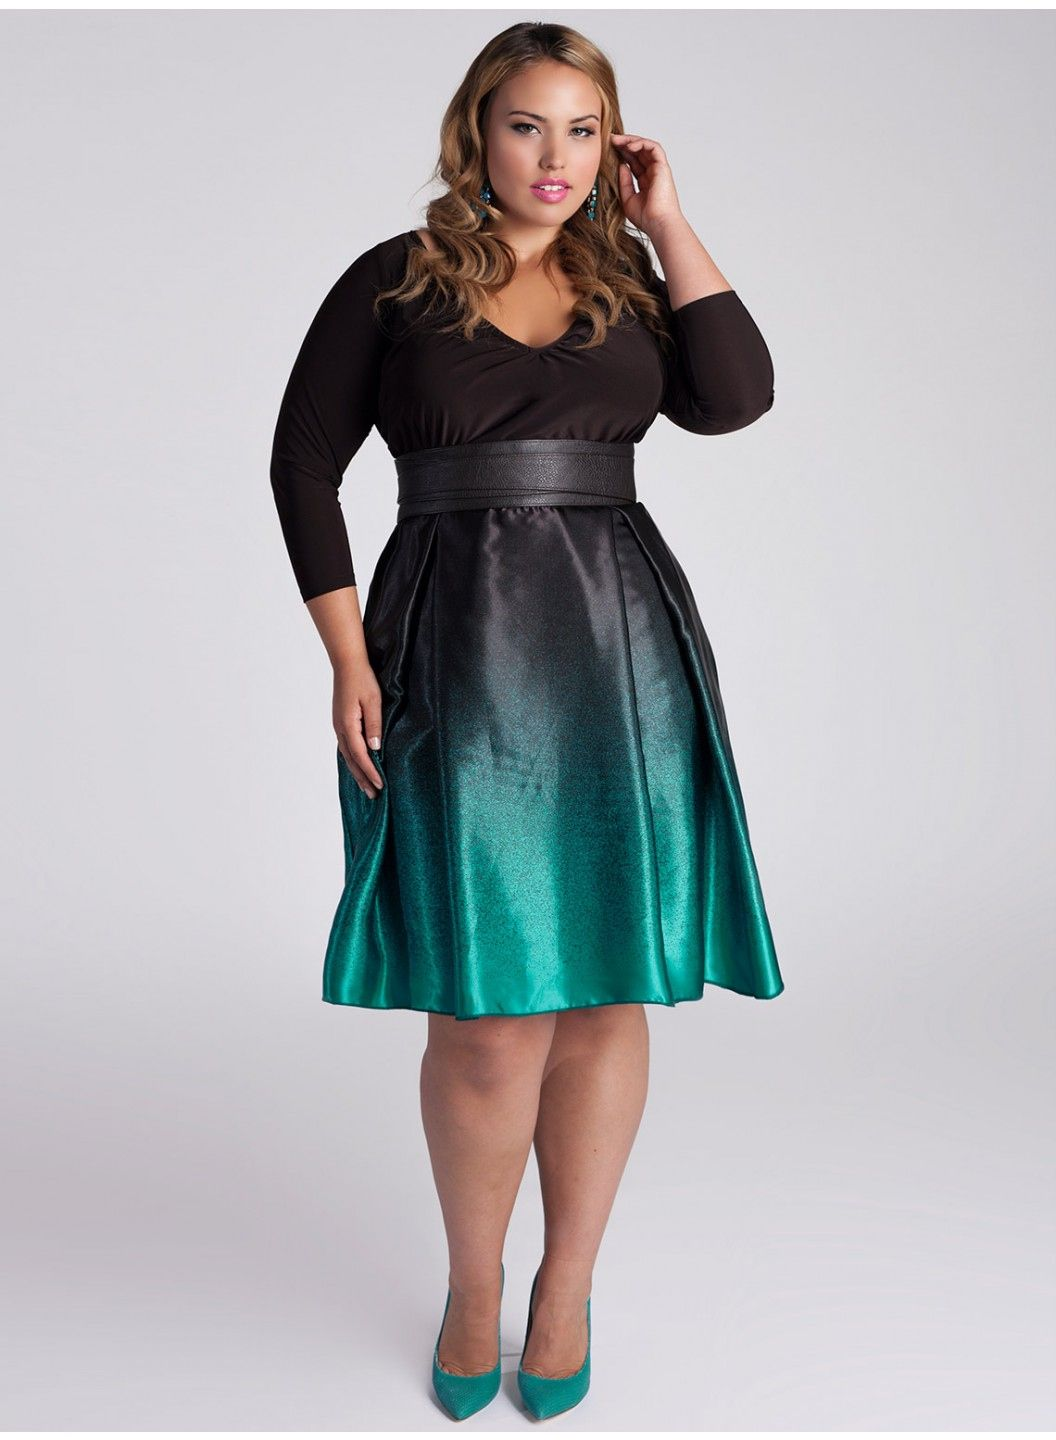 Wedding Guest Plus Size Dresses - Country Dresses for Weddings ...